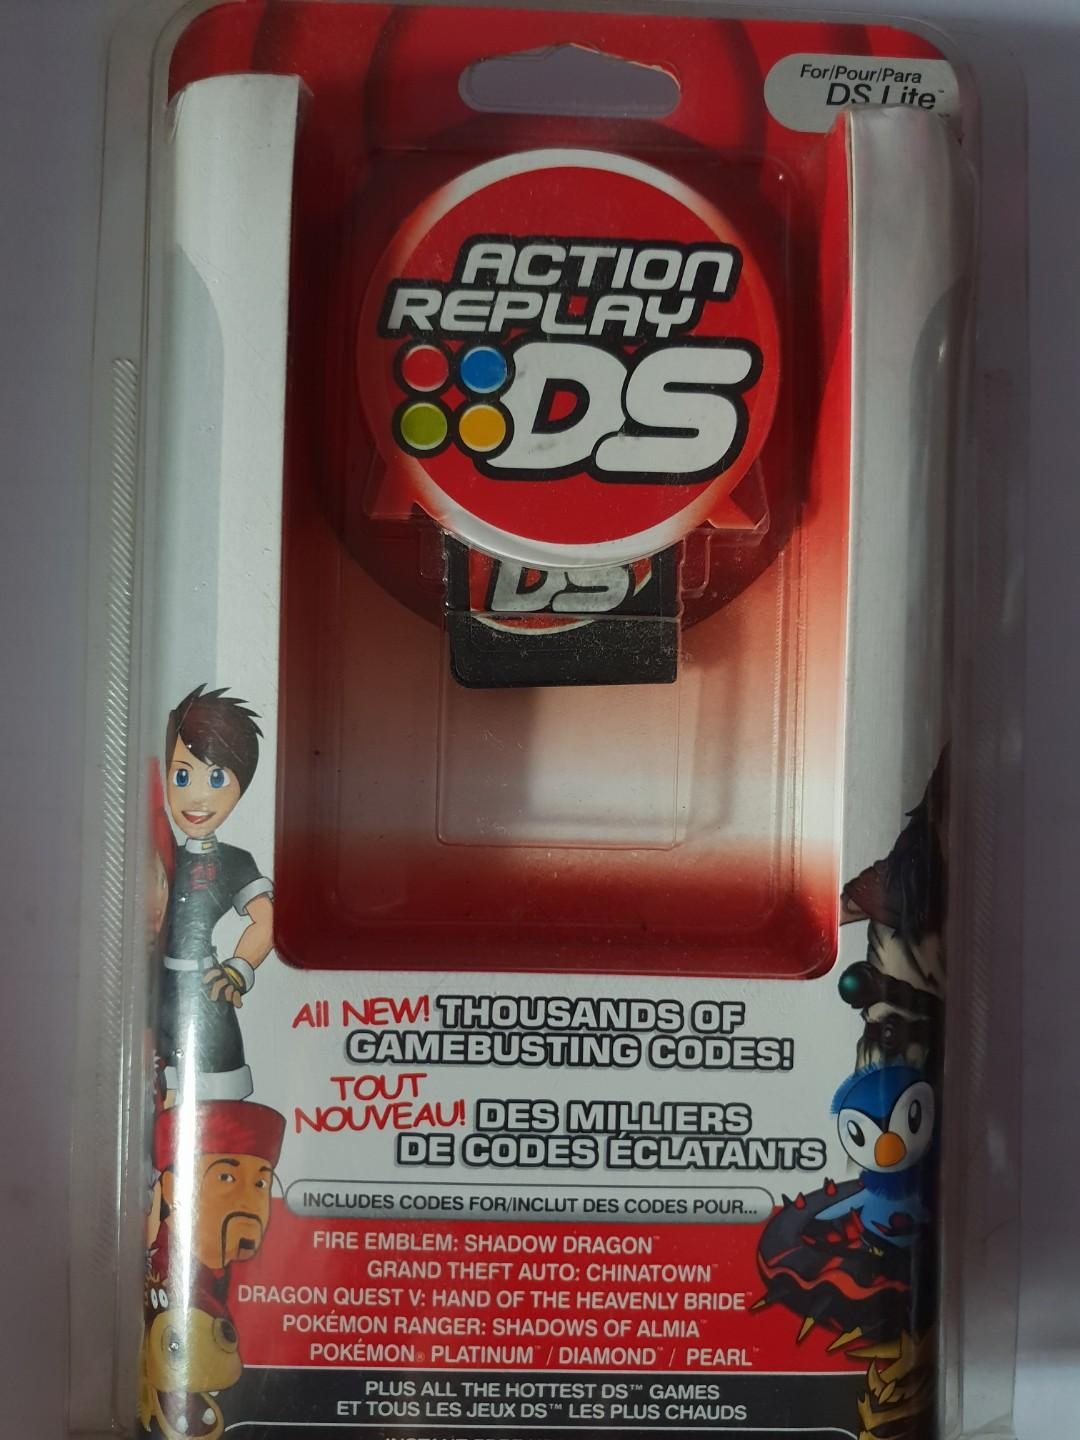 ACTION REPLAY DS FOR DS LITE AND DS, Toys & Games, Video